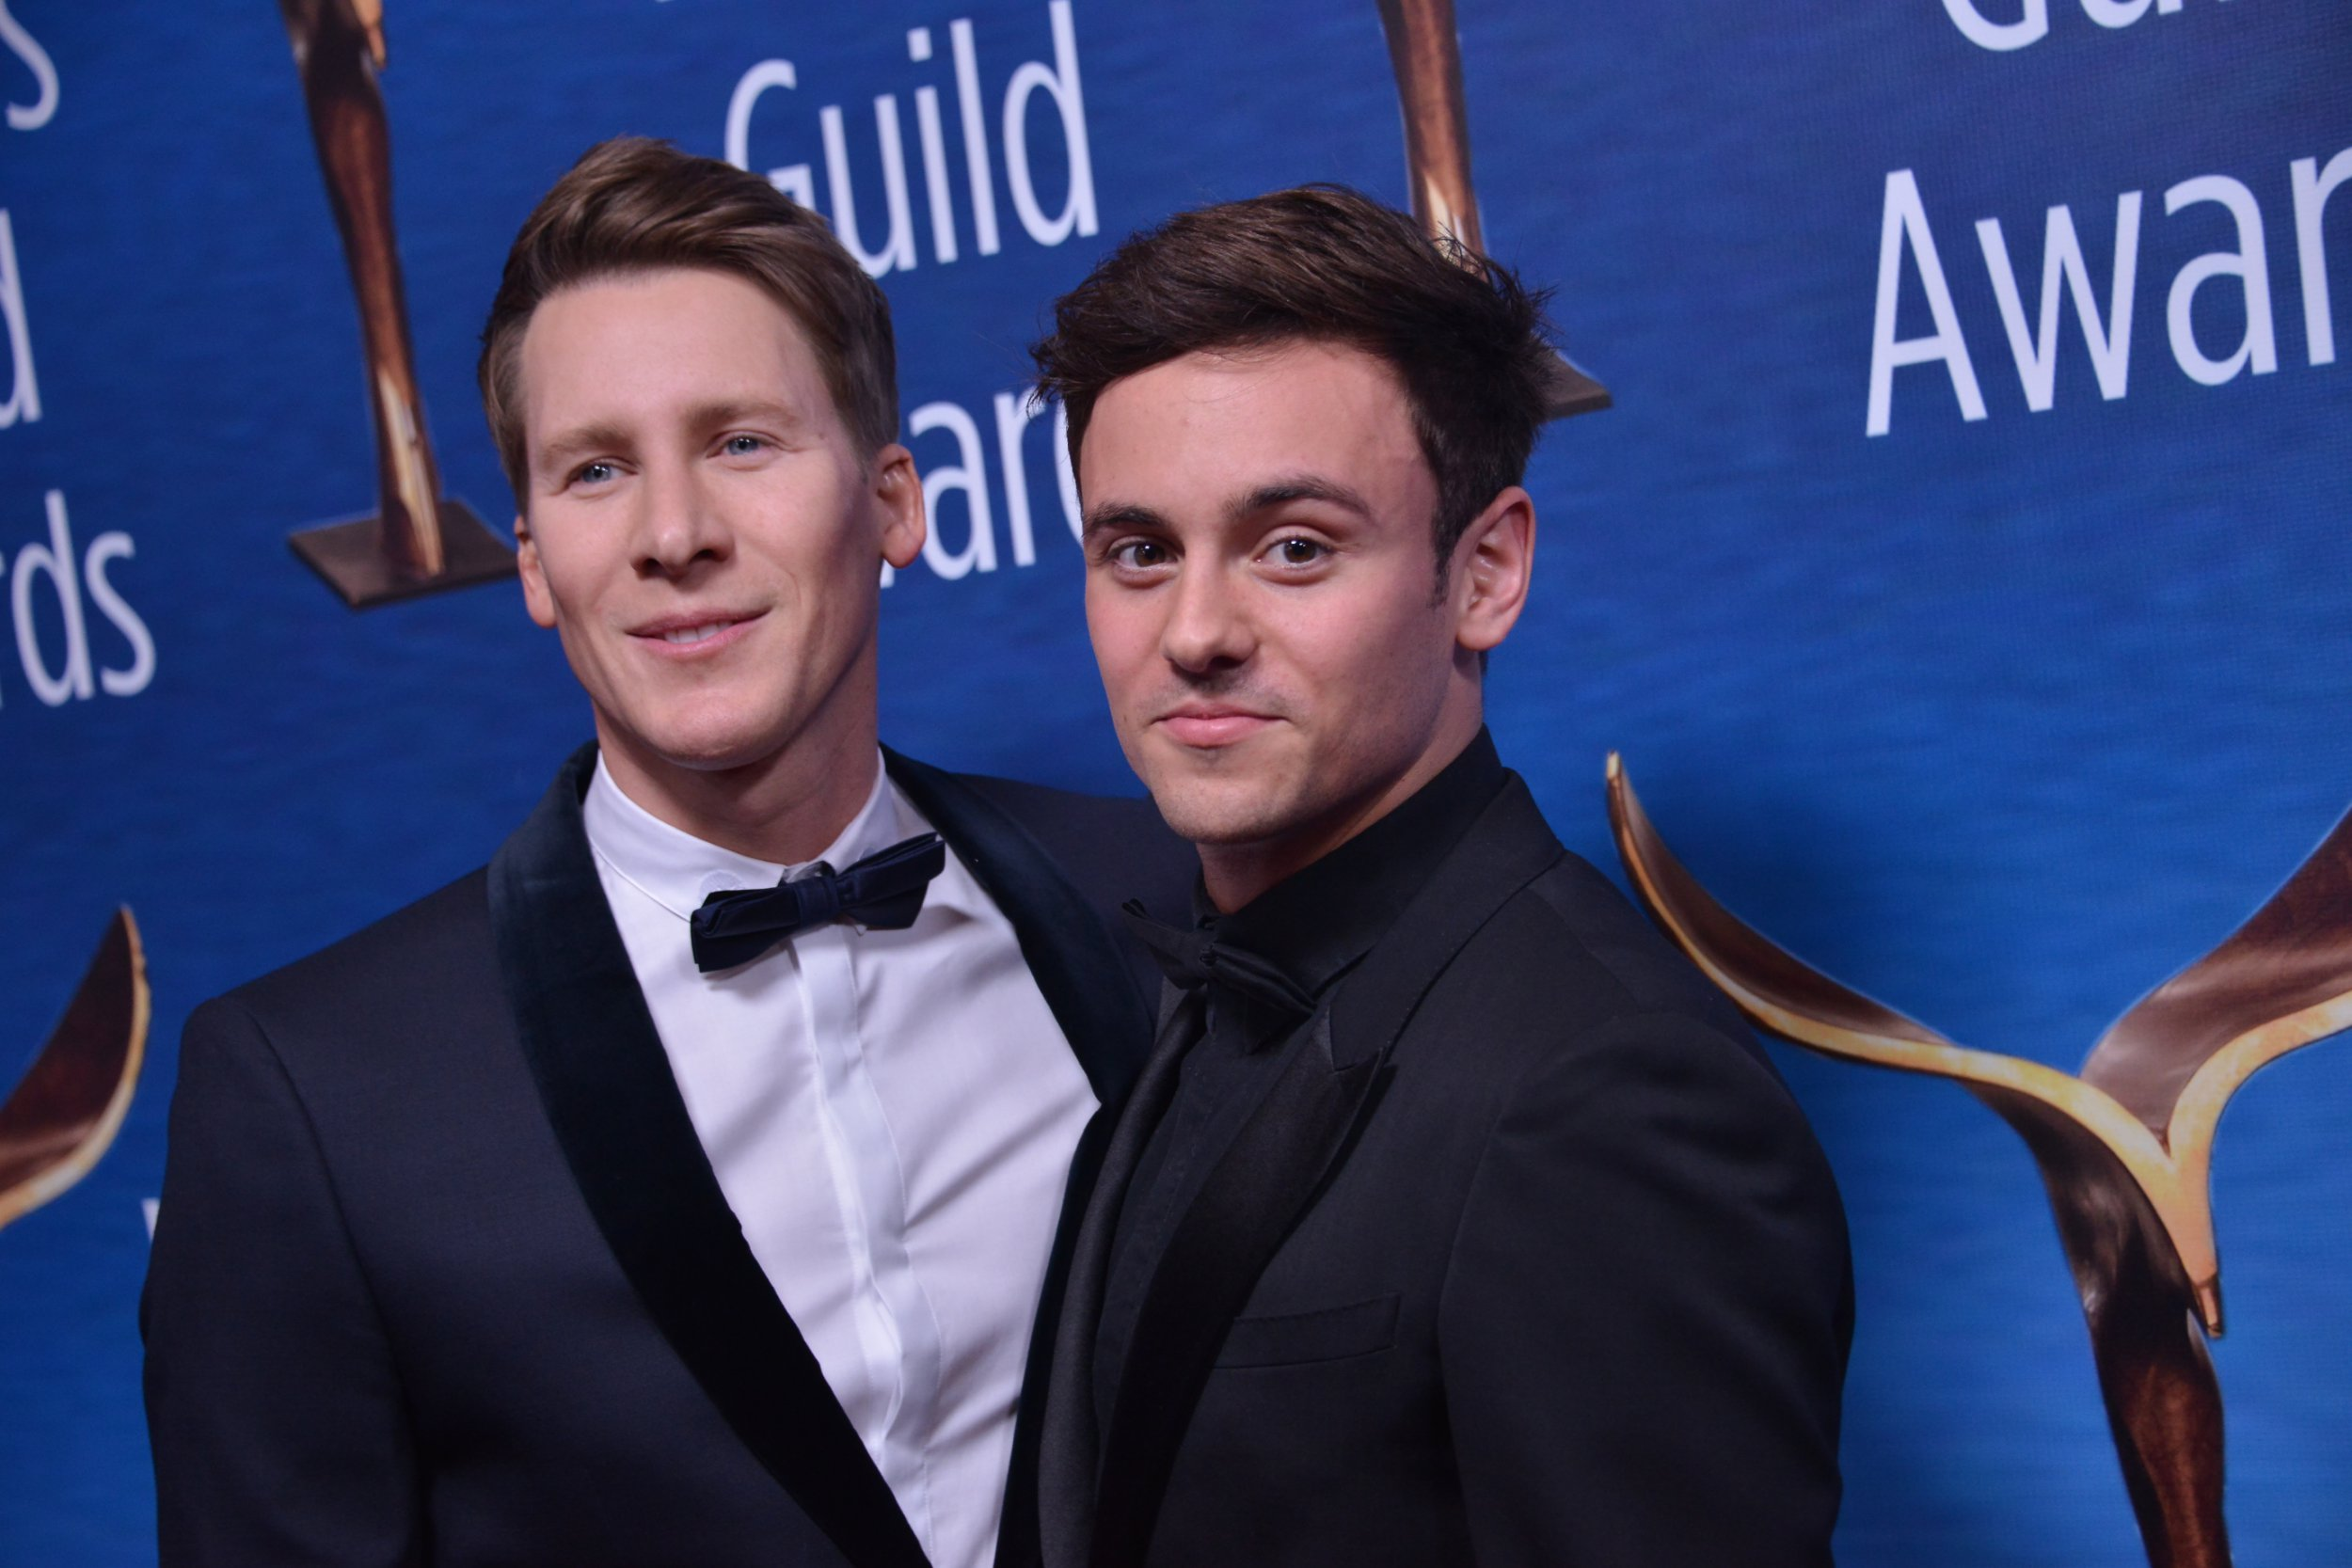 Tom Daley is making a documentary about same-sex surrogacy with husband Dustin Lance Black